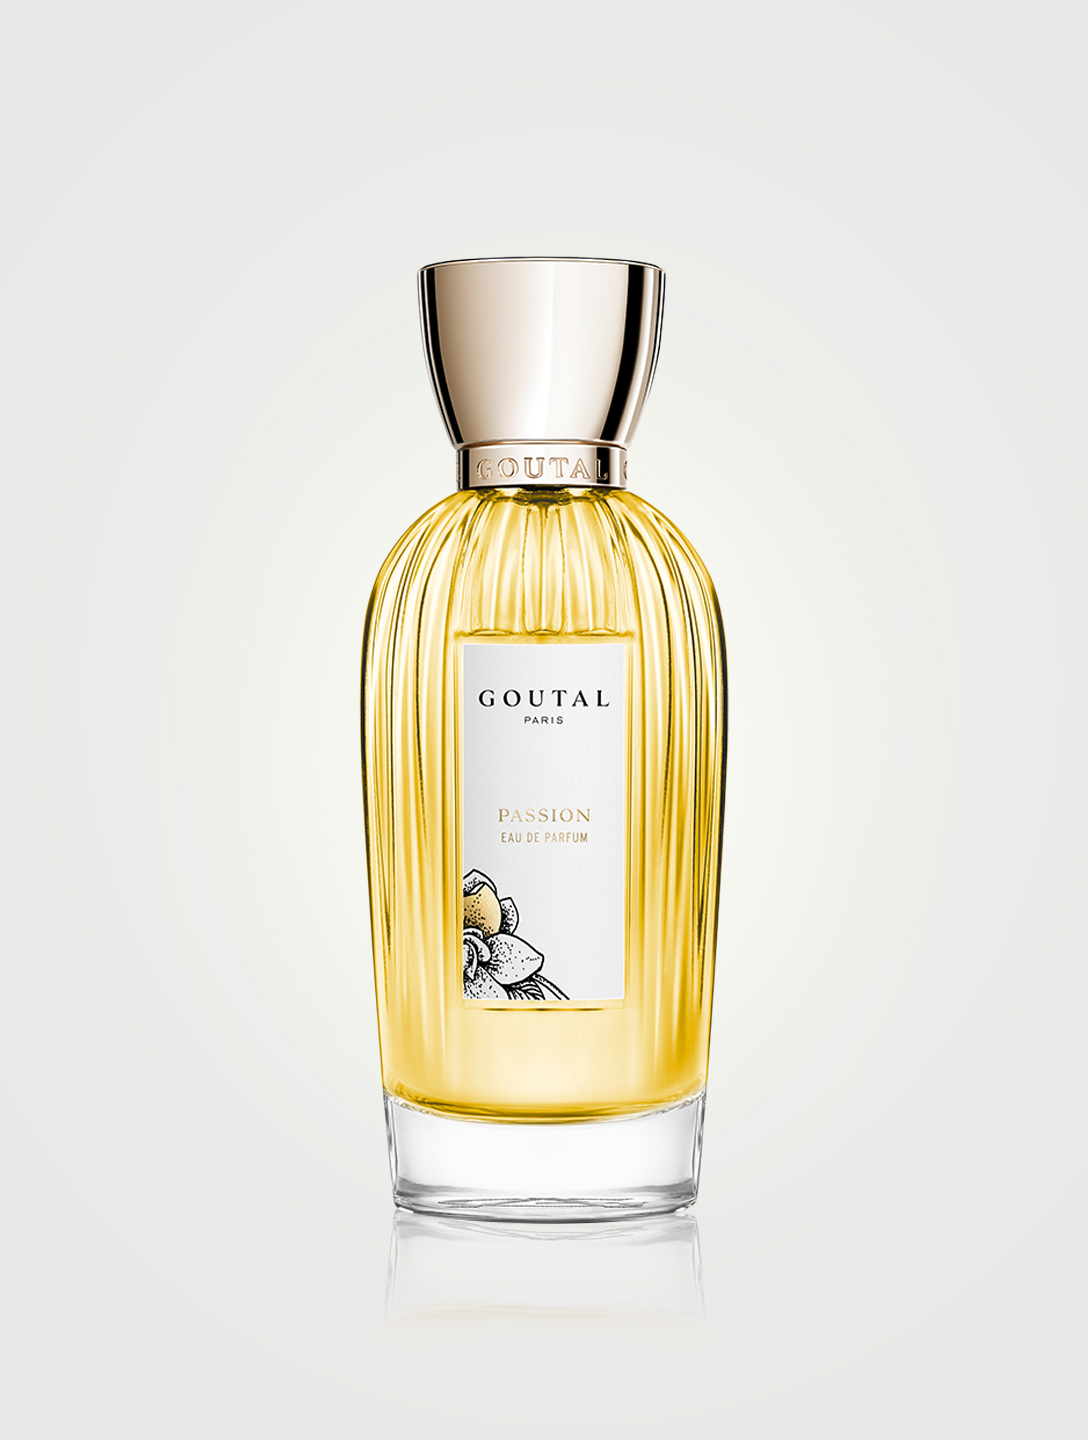 GOUTAL PARIS Passion Eau de Parfum Beauty